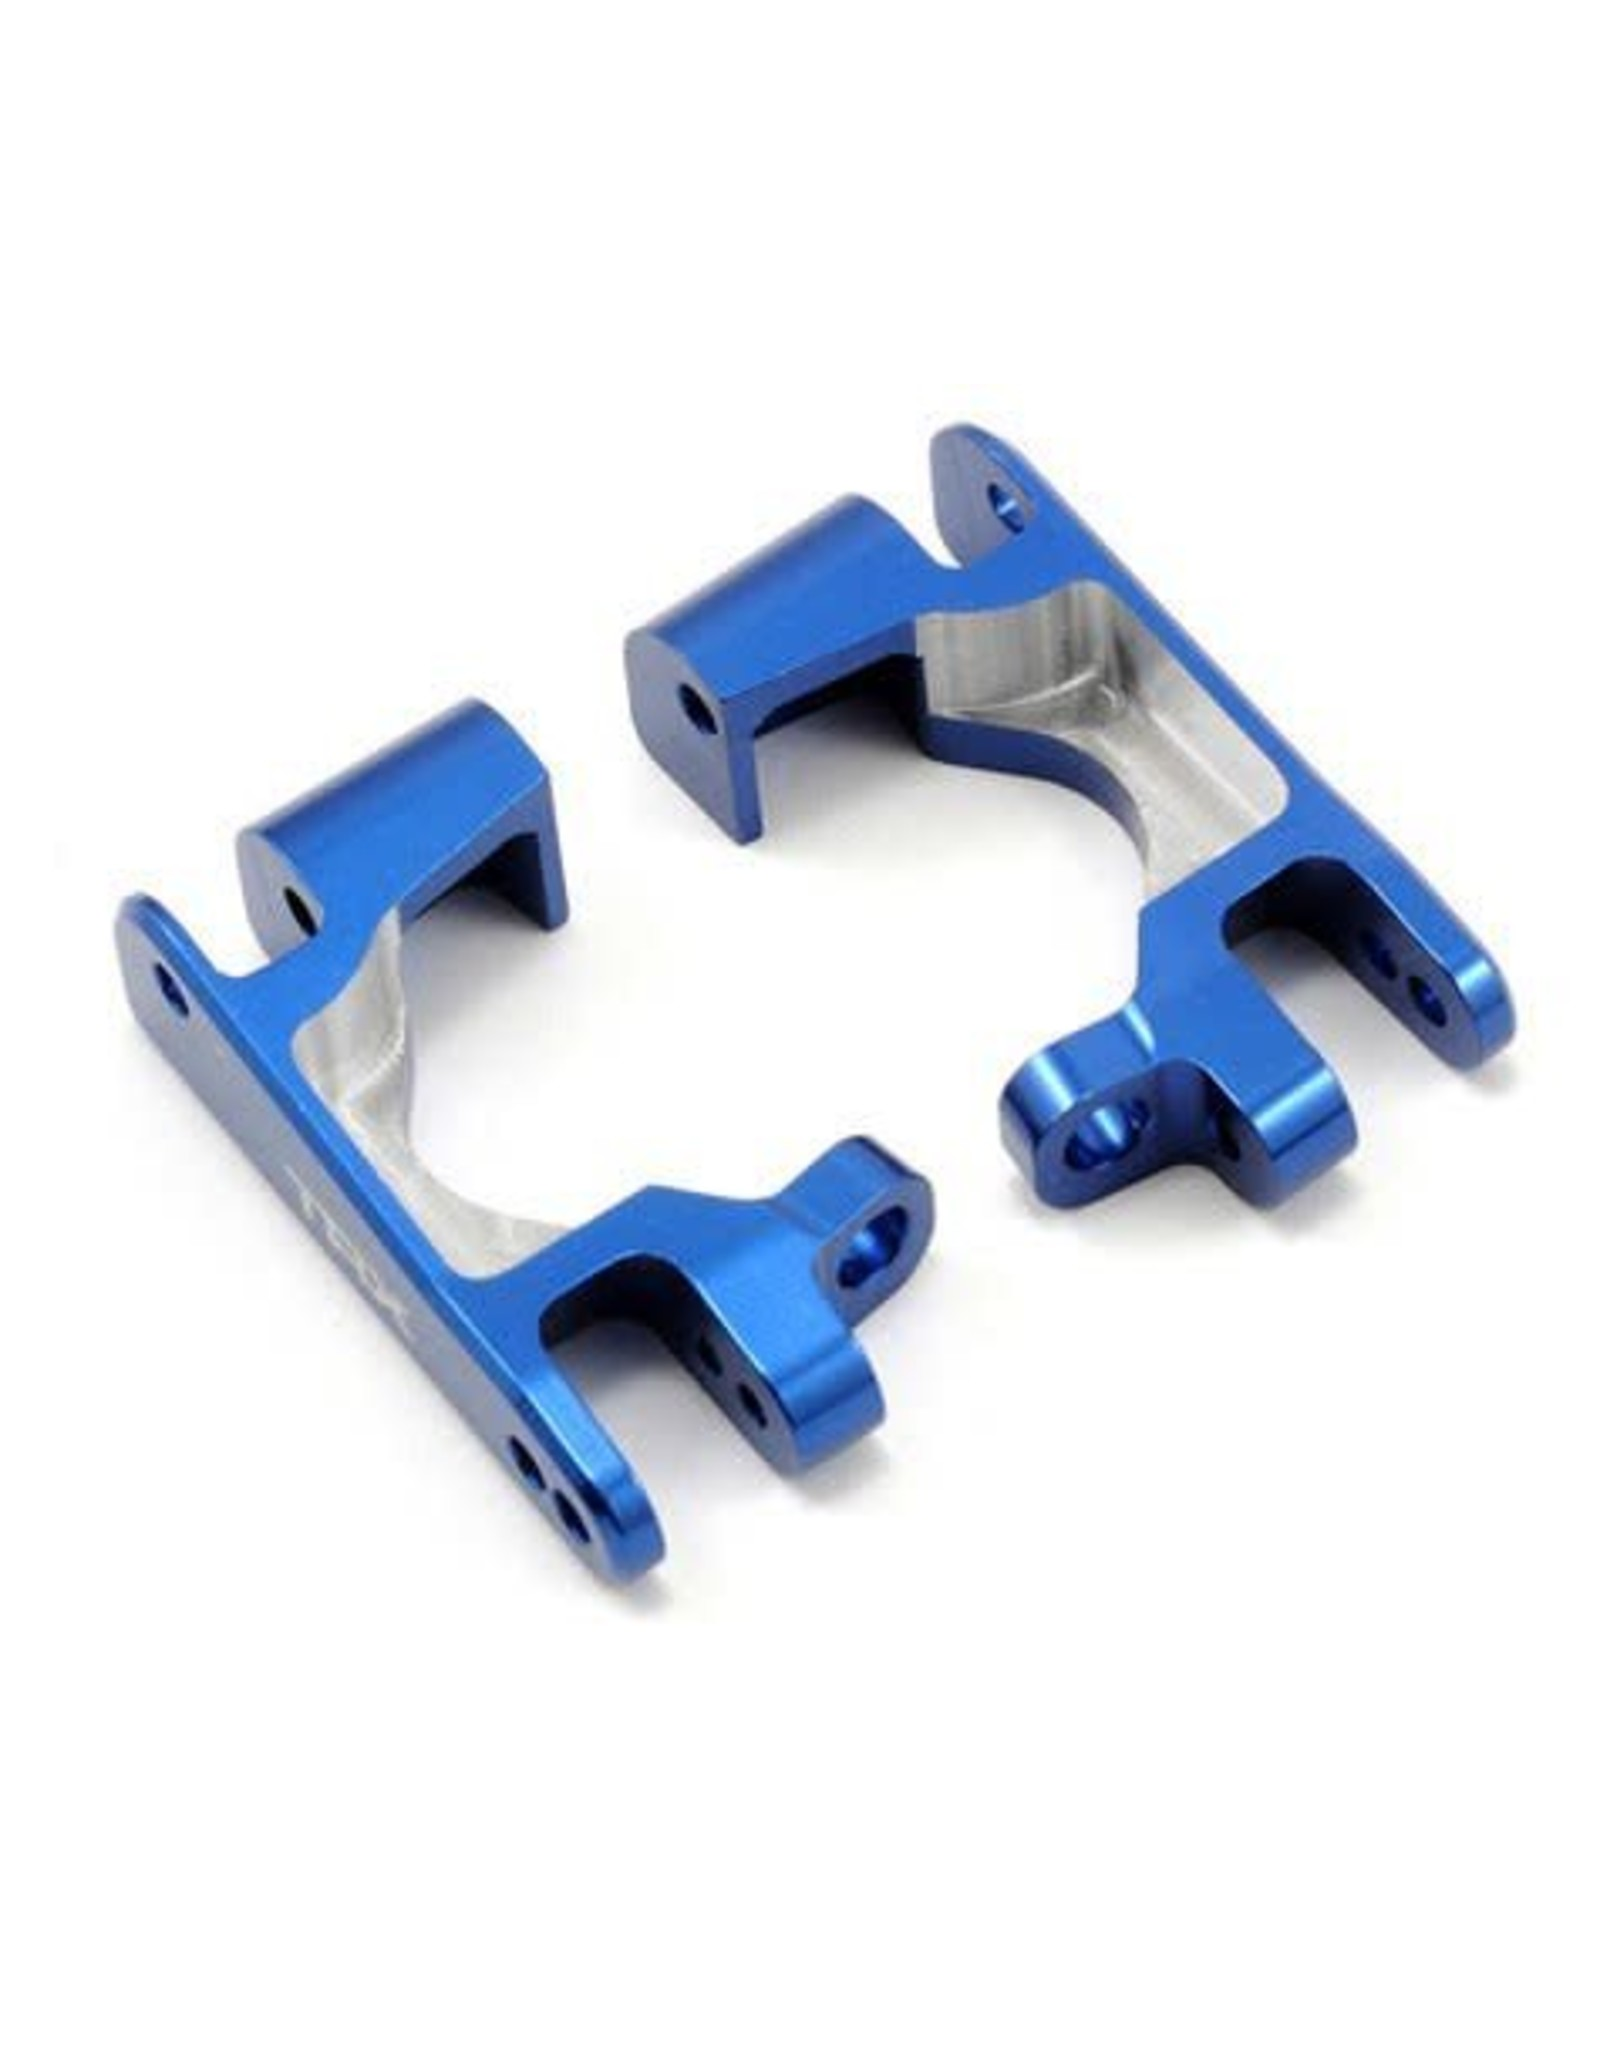 Traxxas Alum Caster Block(C-Hubs) Blue Left/Right:SLH 4x4 (TRA6832X)